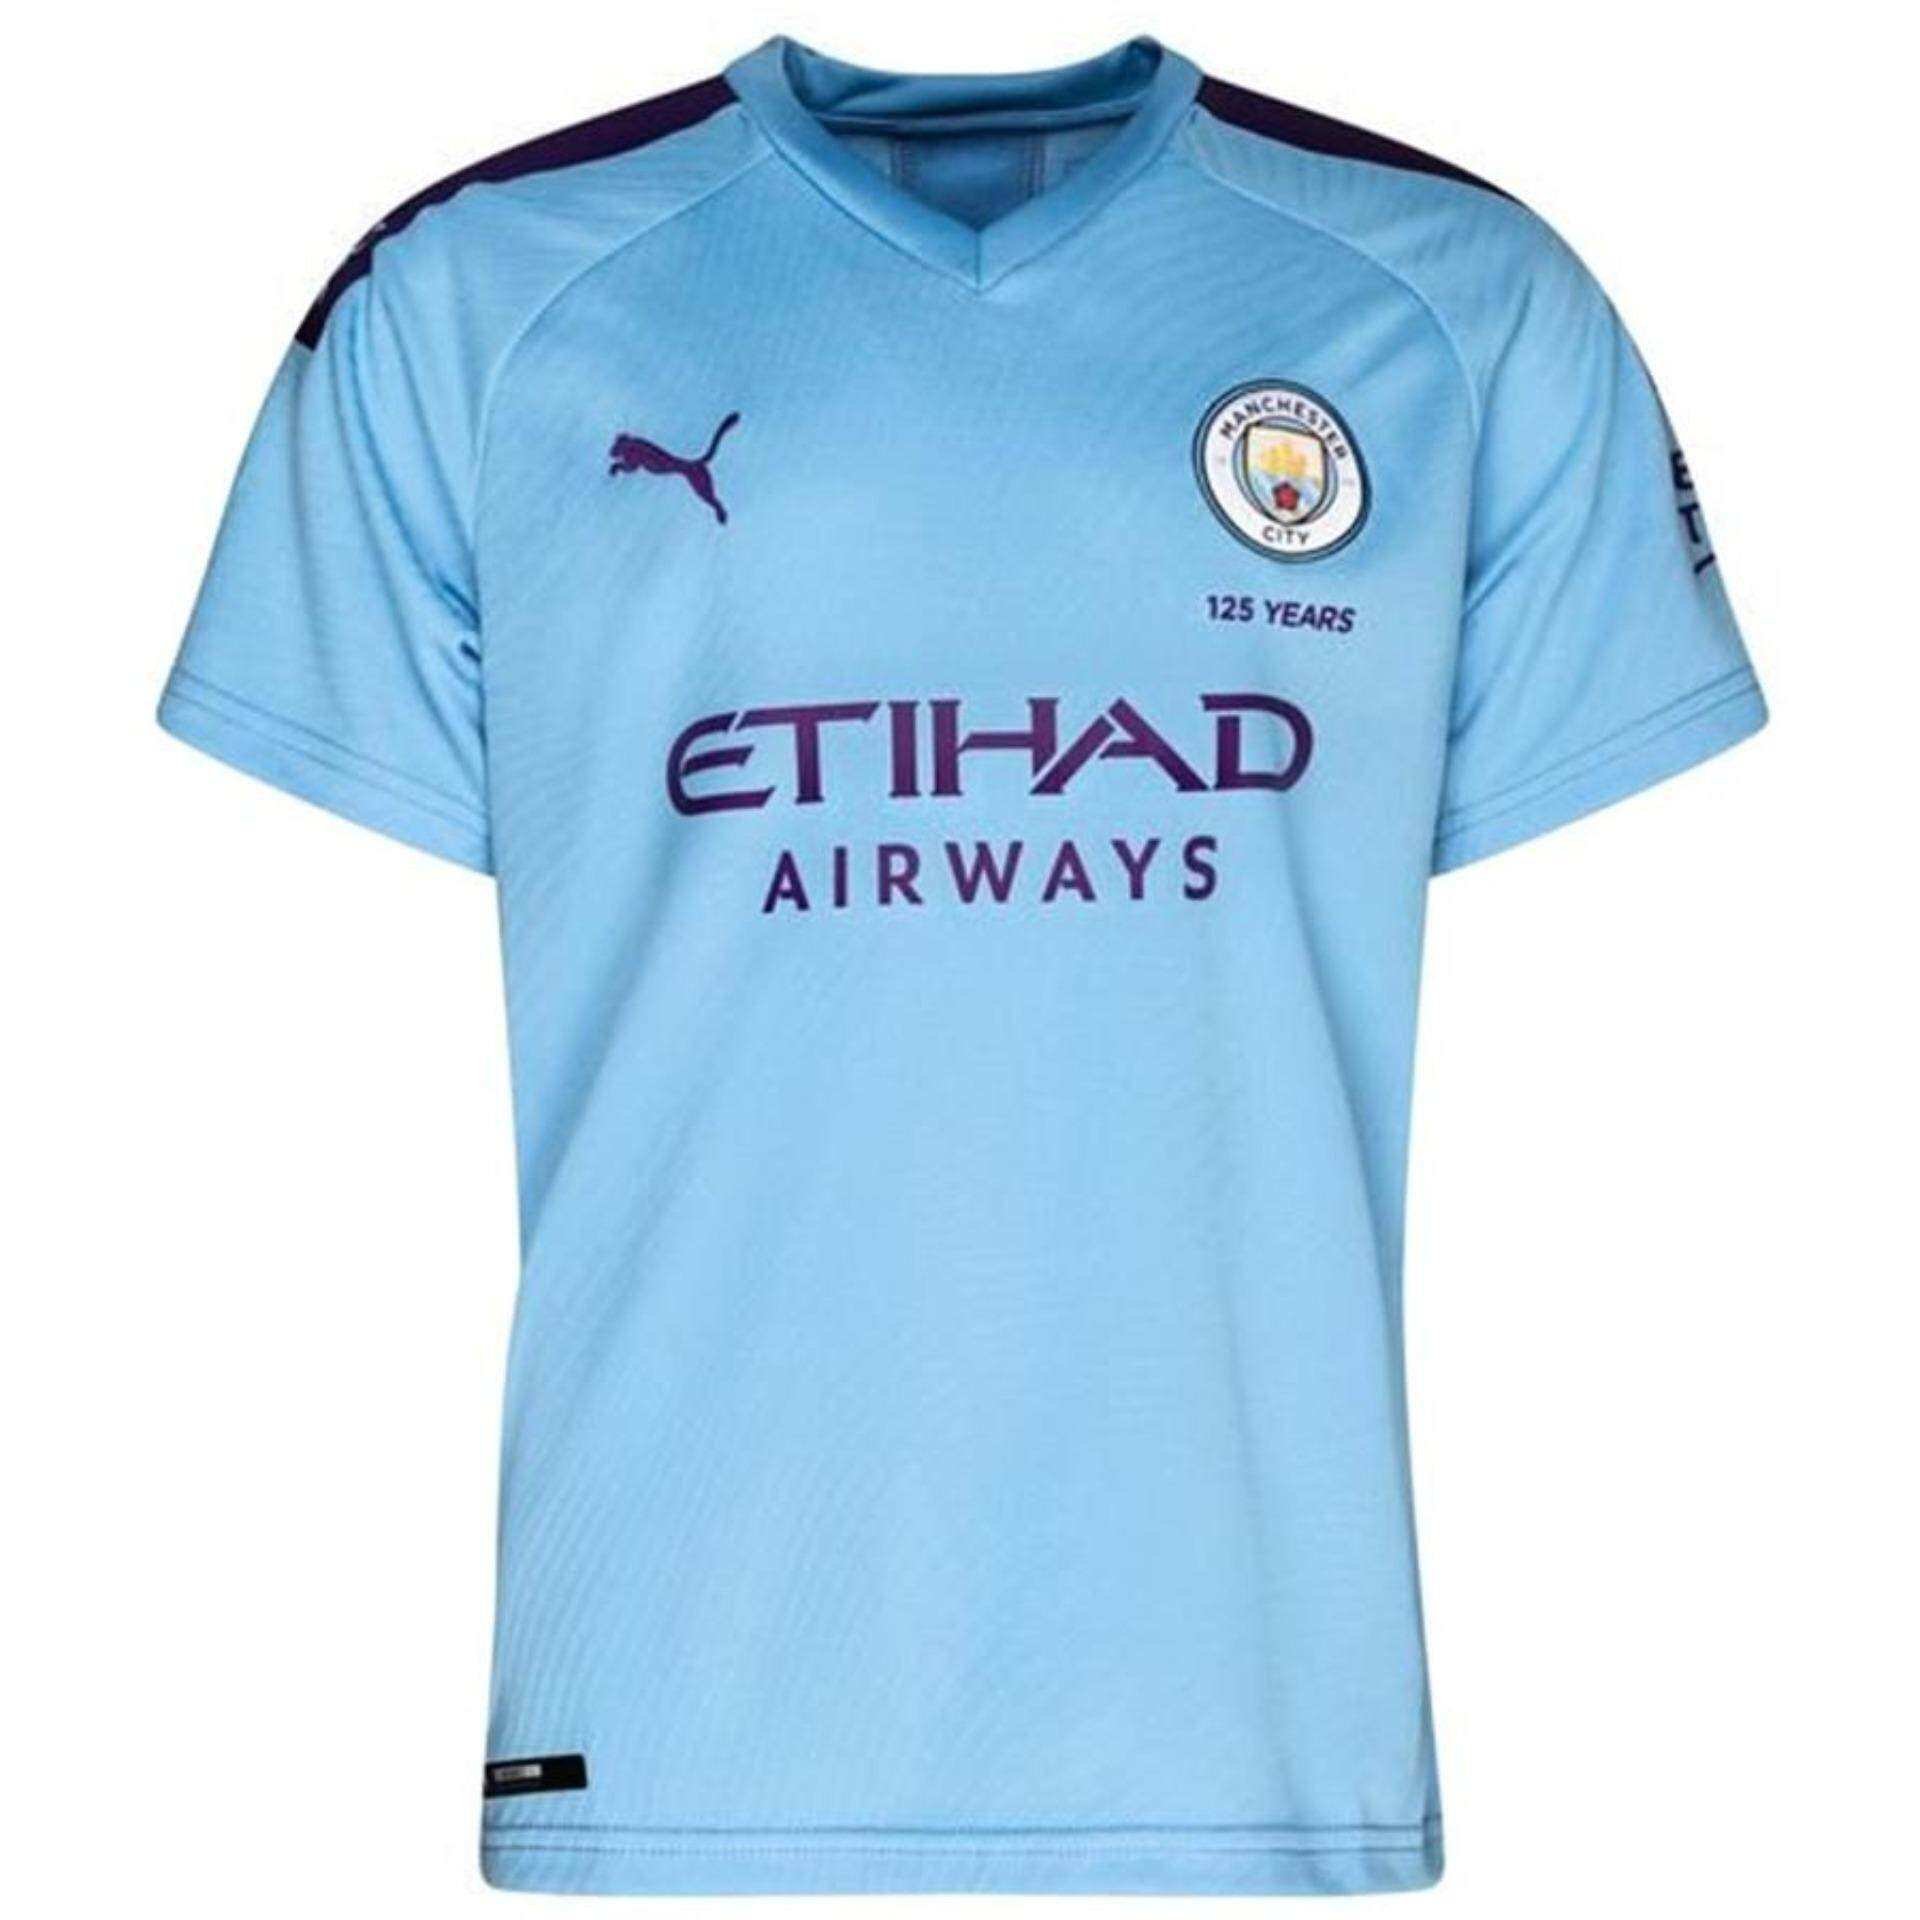 2d239907 Jersi Bola - Buy Jersi Bola at Best Price in Malaysia   www.lazada ...